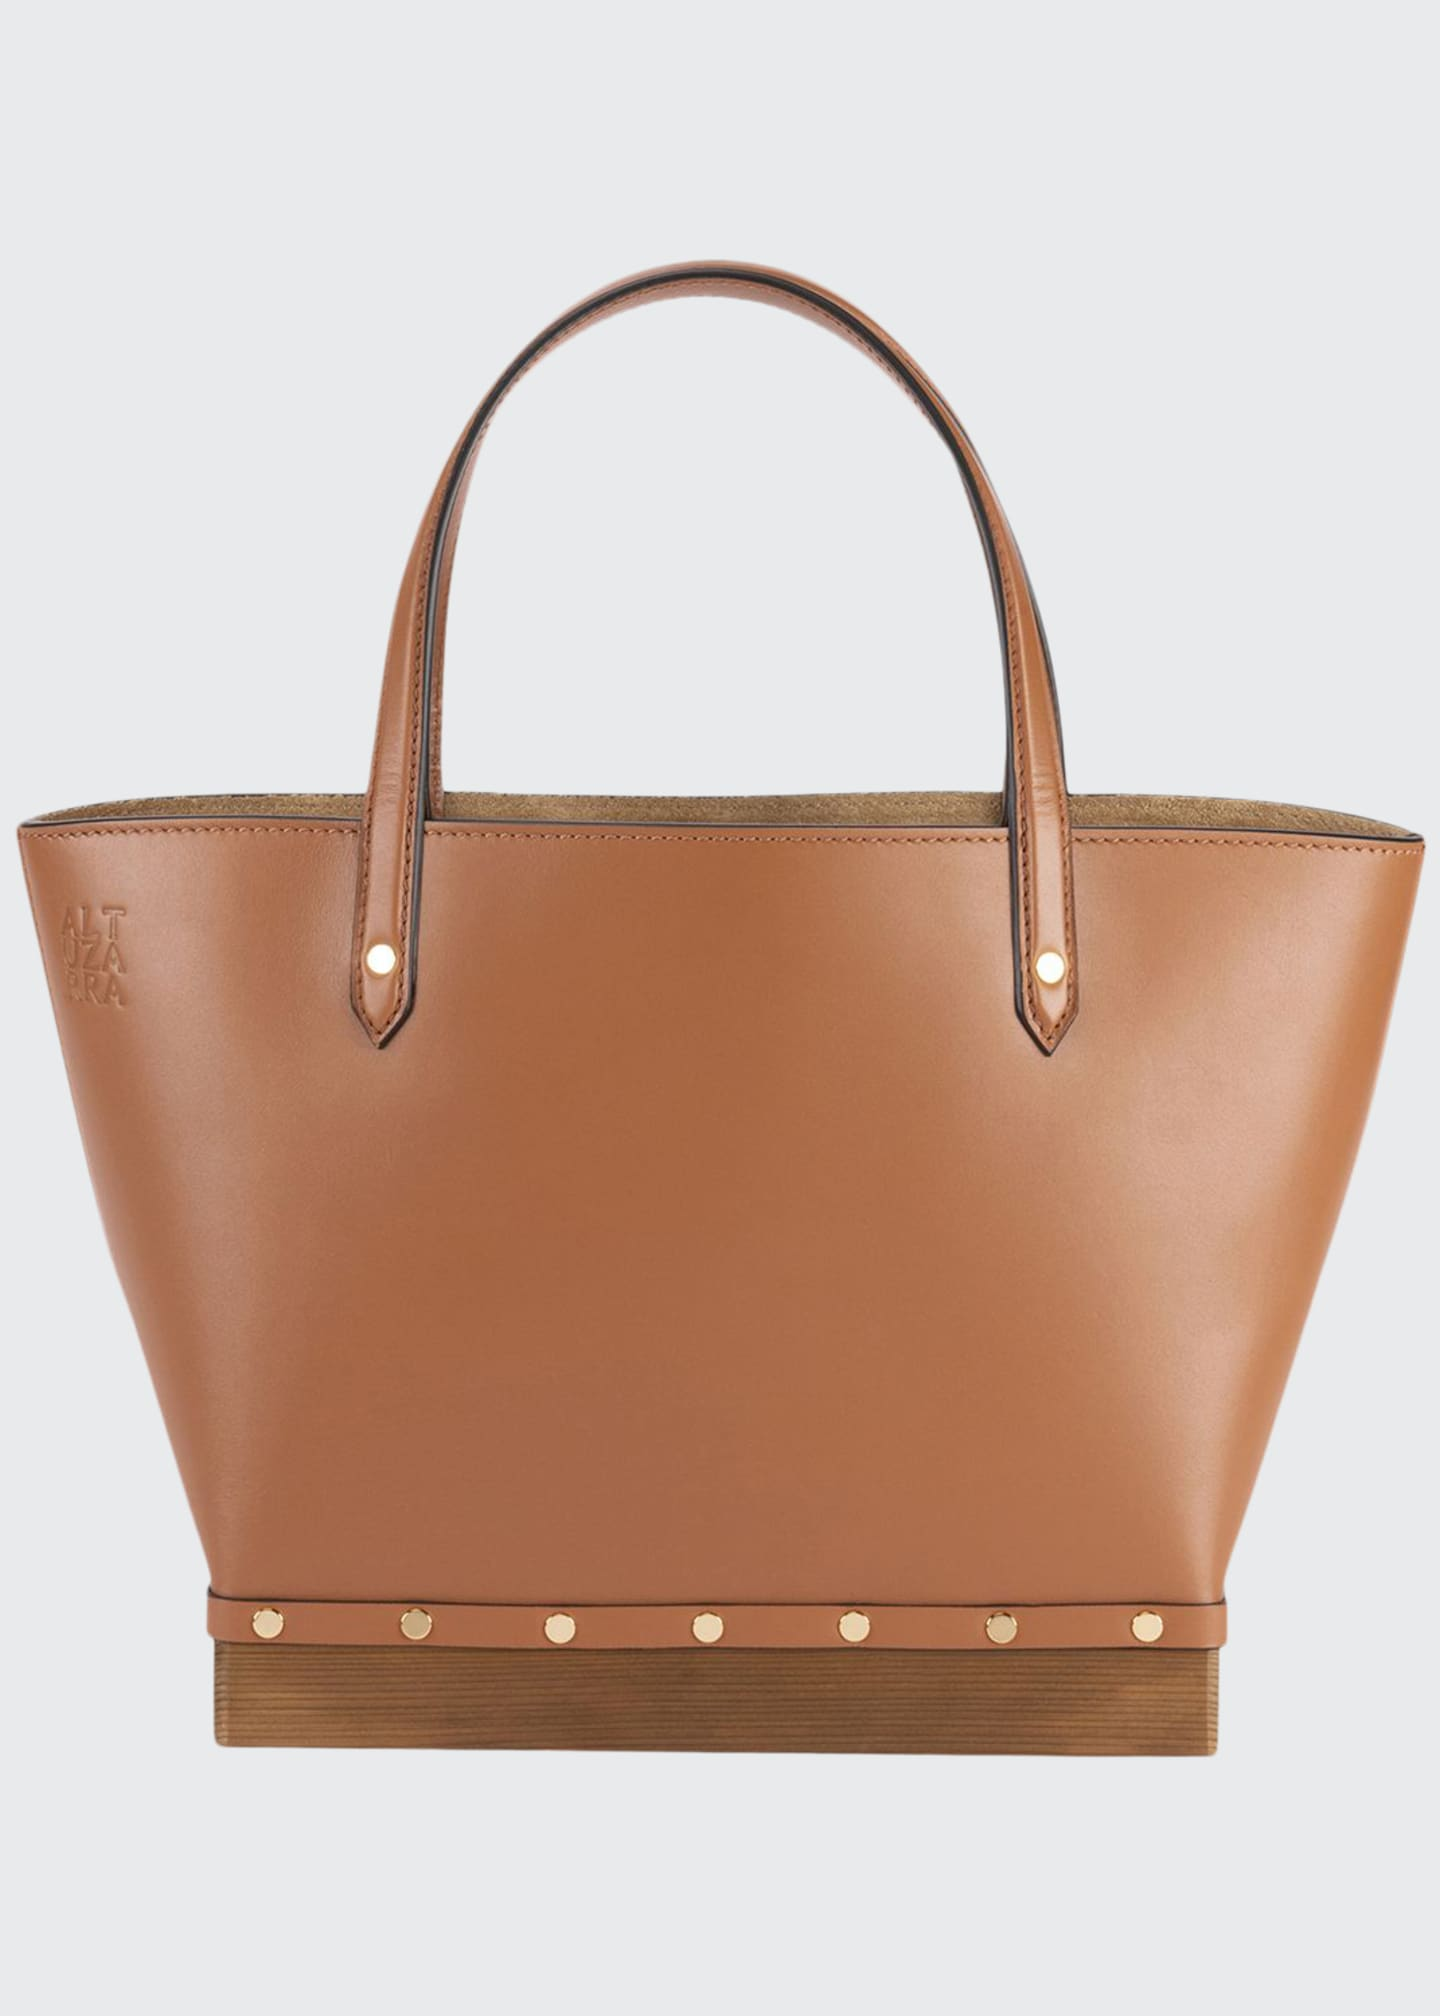 Altuzarra Clog Smooth Small Tote Bag